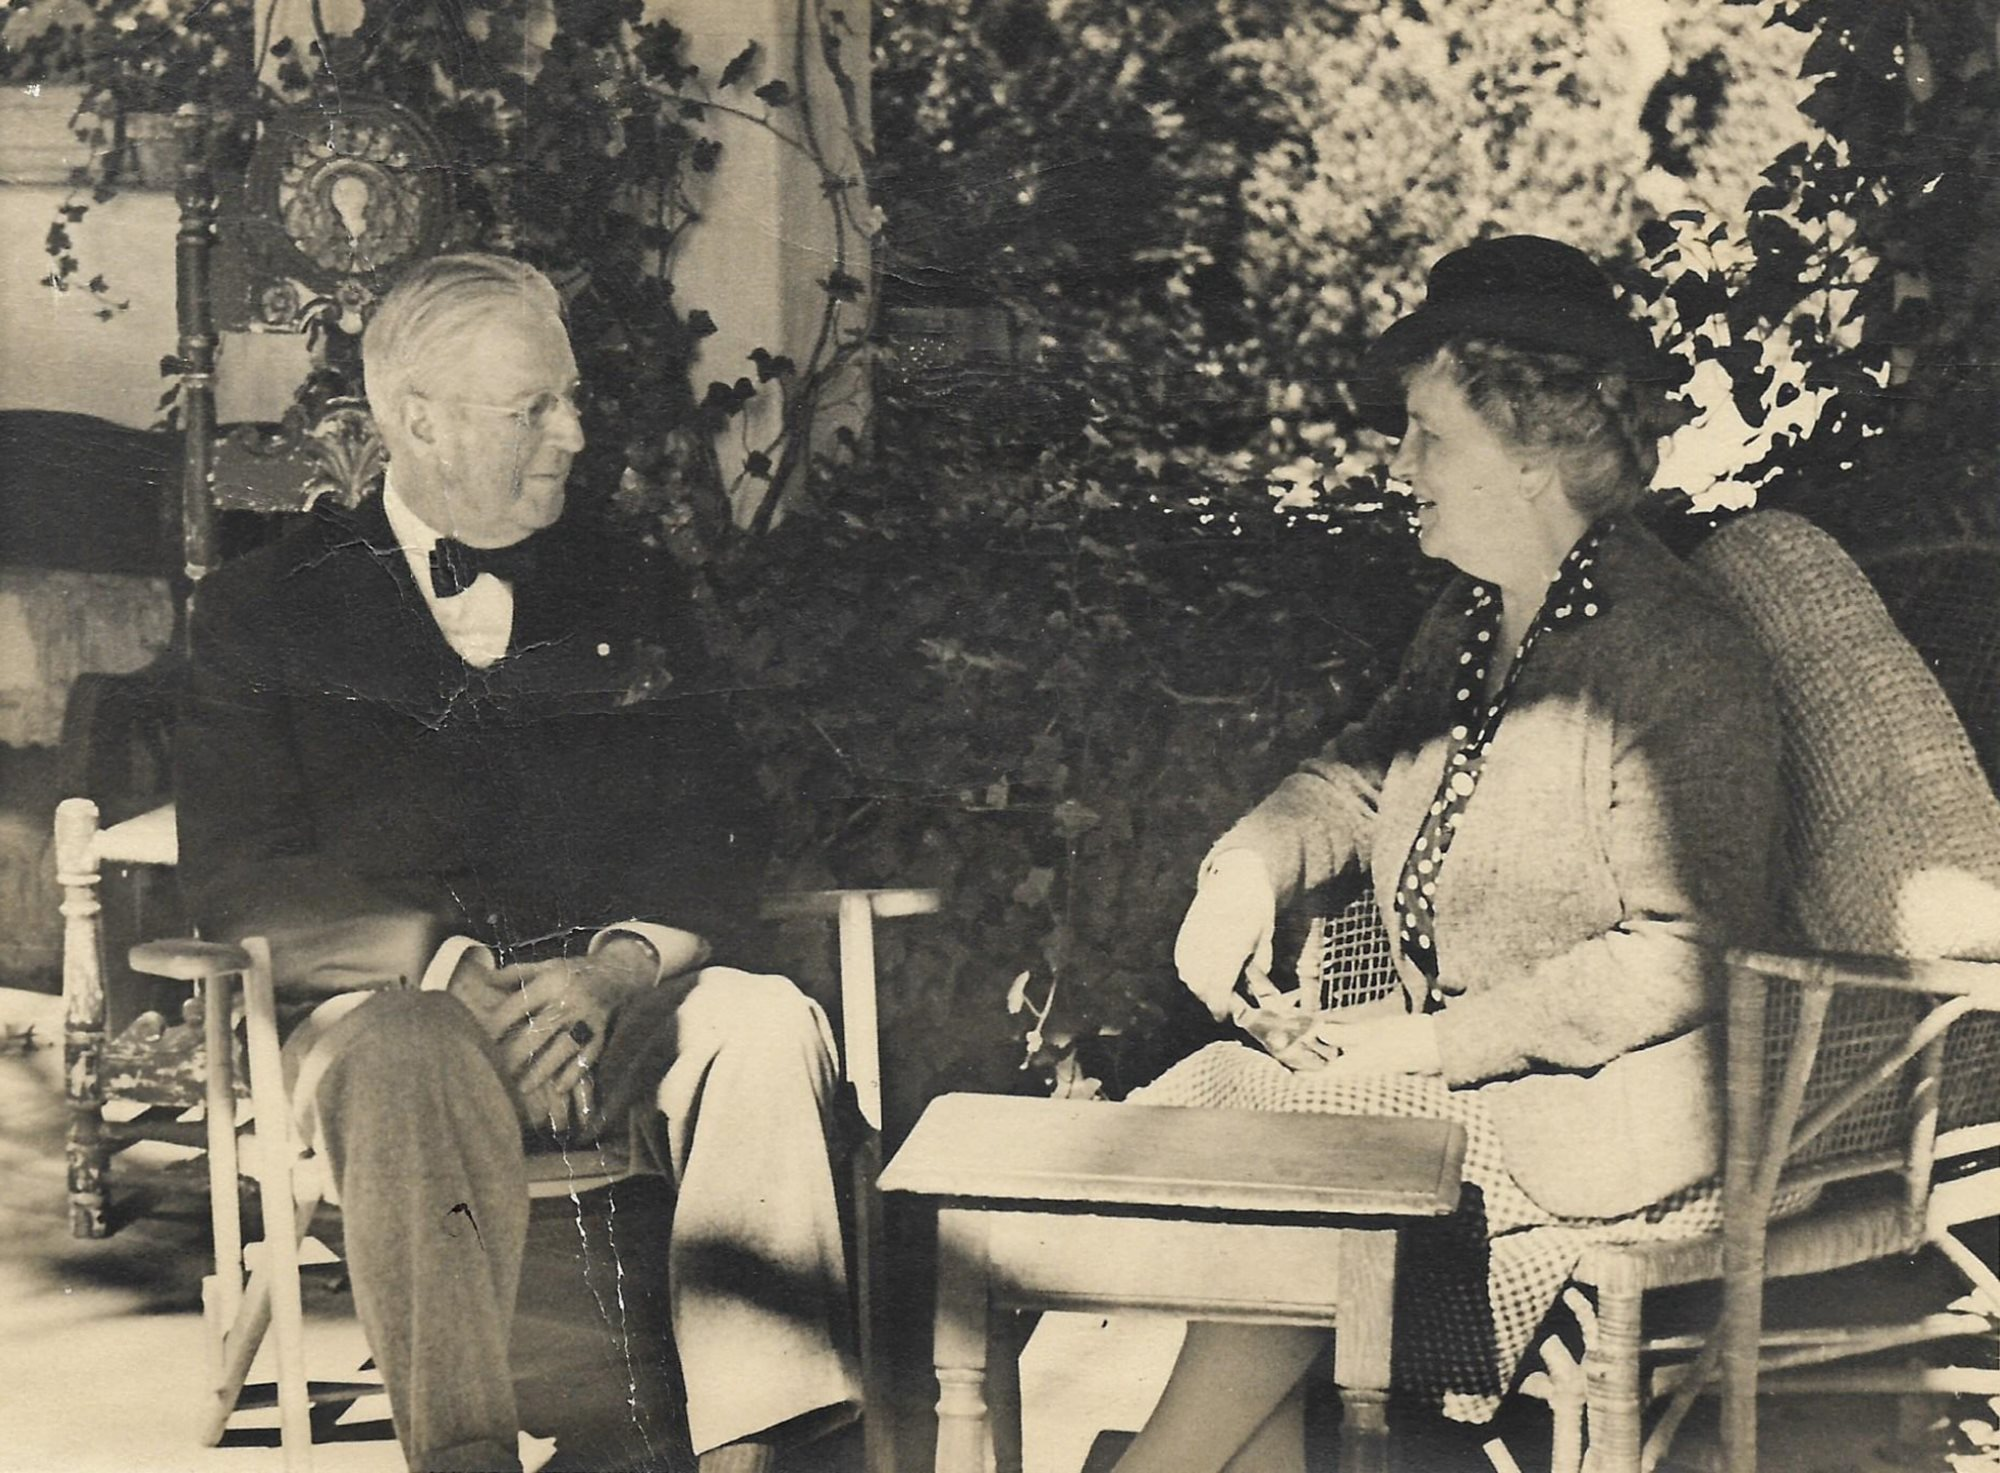 Ambassador Alexander Weddell and his wife, Virginia Chase Steedman Weddell in their garden at Virginia House. Archival Photograph from the Personal Collection of Alexander and Virginia Weddell, courtesy of the Virginia House Museum.